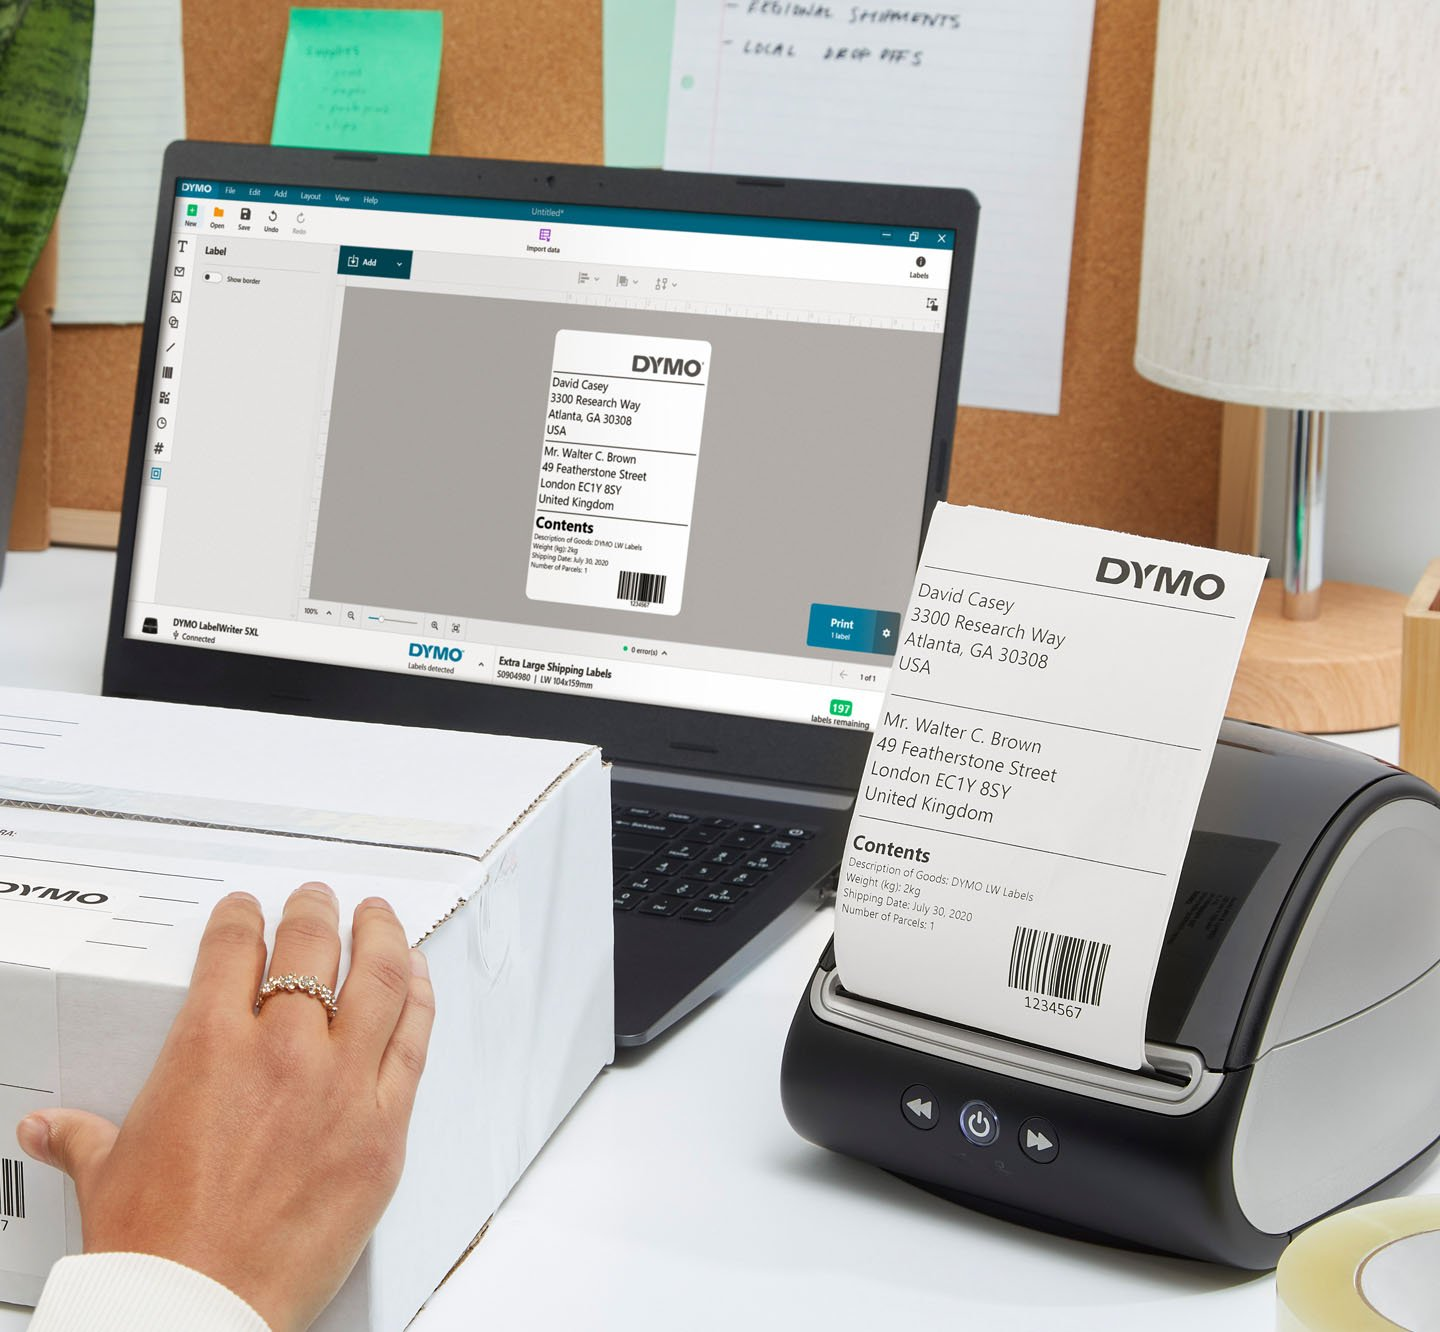 A label printer connected to a laptop computer printing a shipping label.